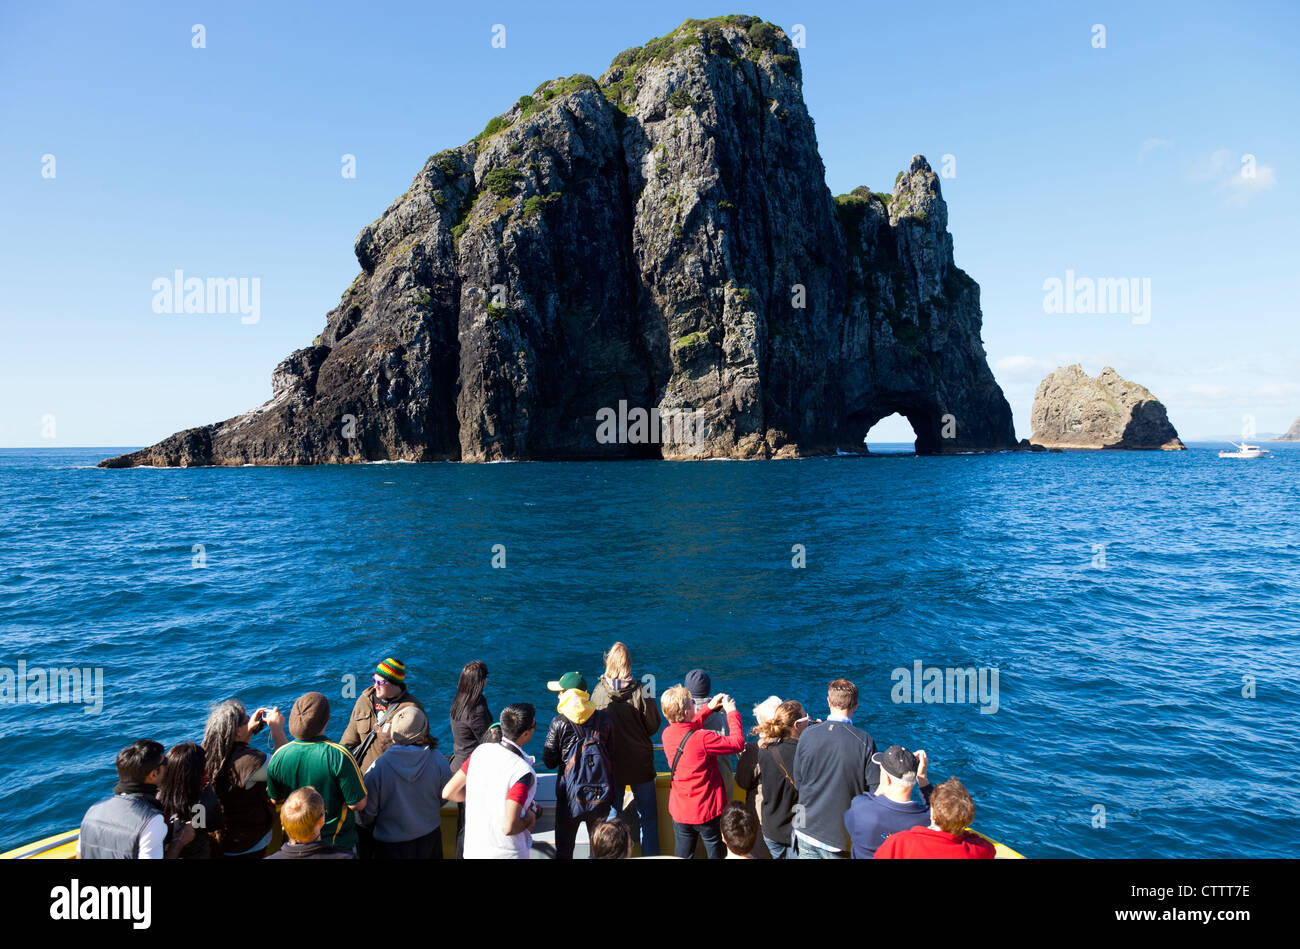 Cruising the Bay of Islands, New Zealand - photographing the Hole in the Rock 2 - Stock Image